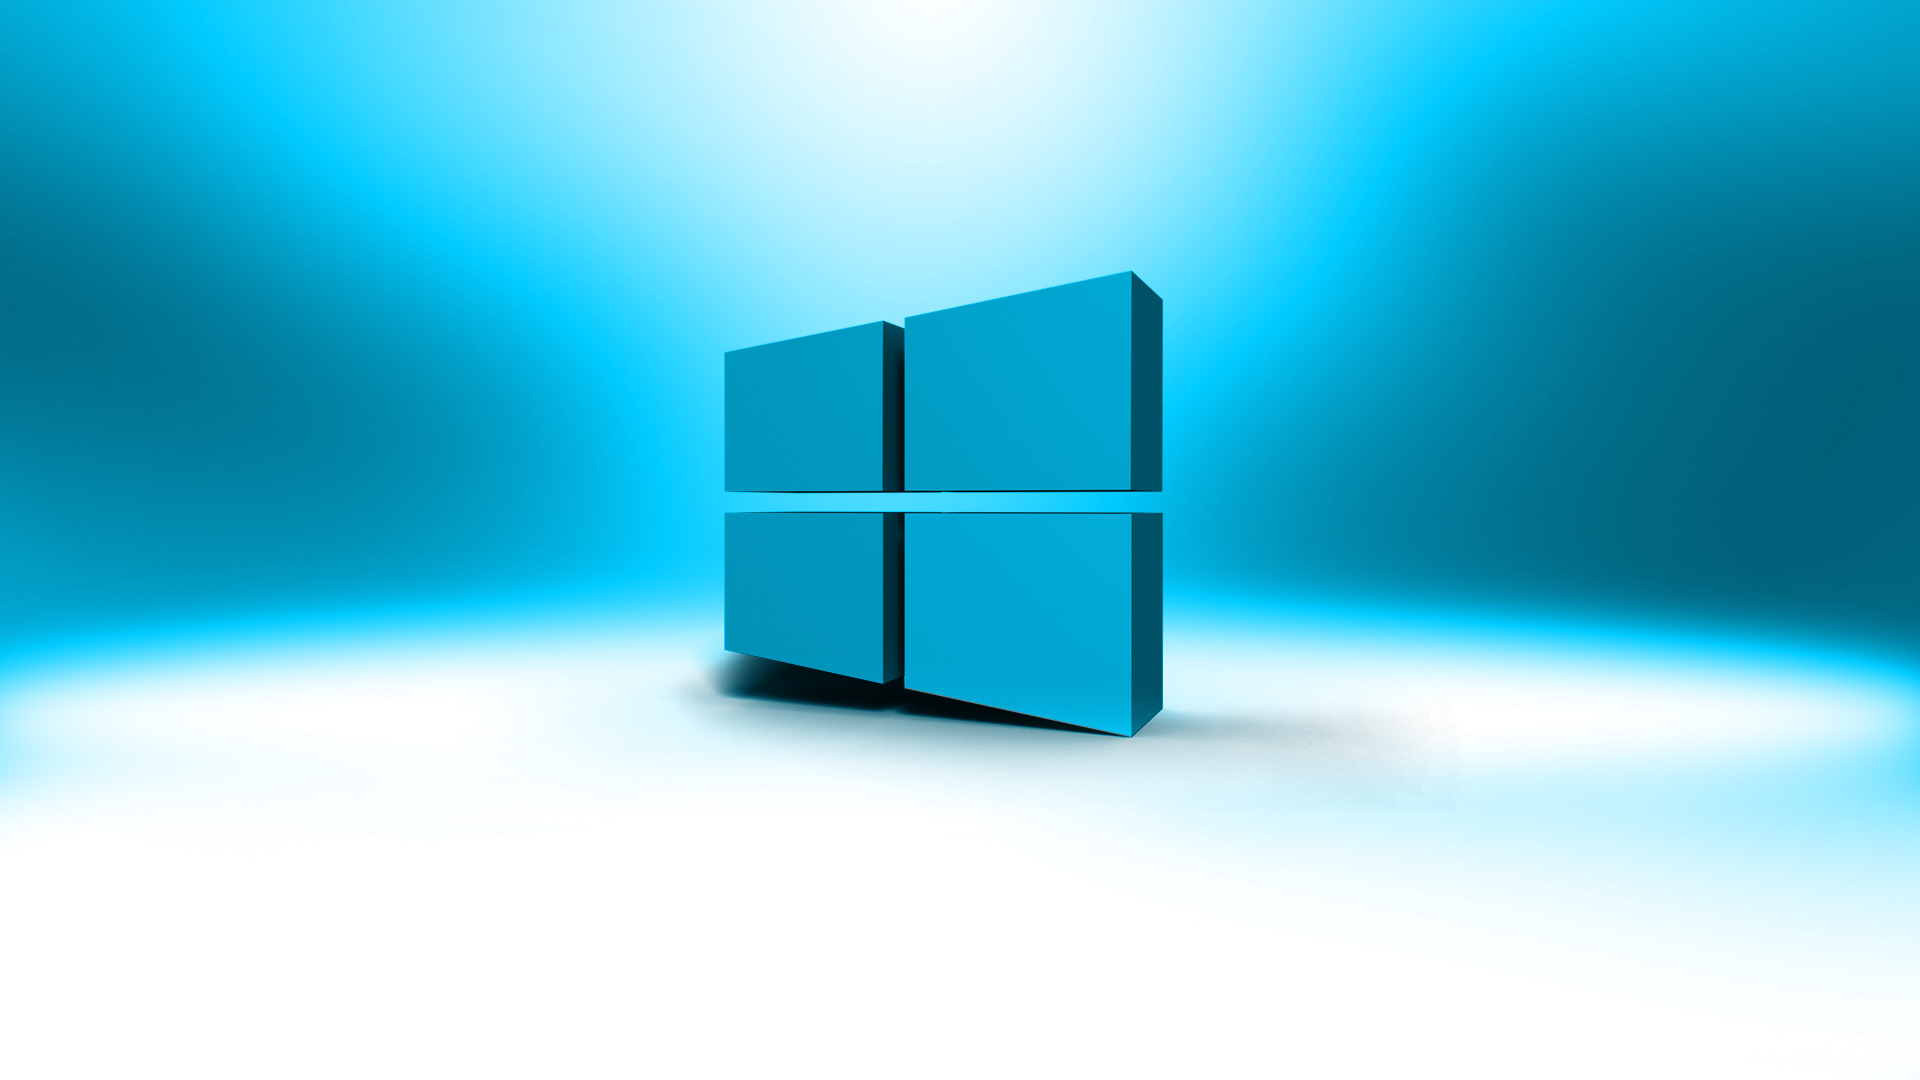 windows 8 wallpaper 3d by metroui customization wallpaper mac pc os